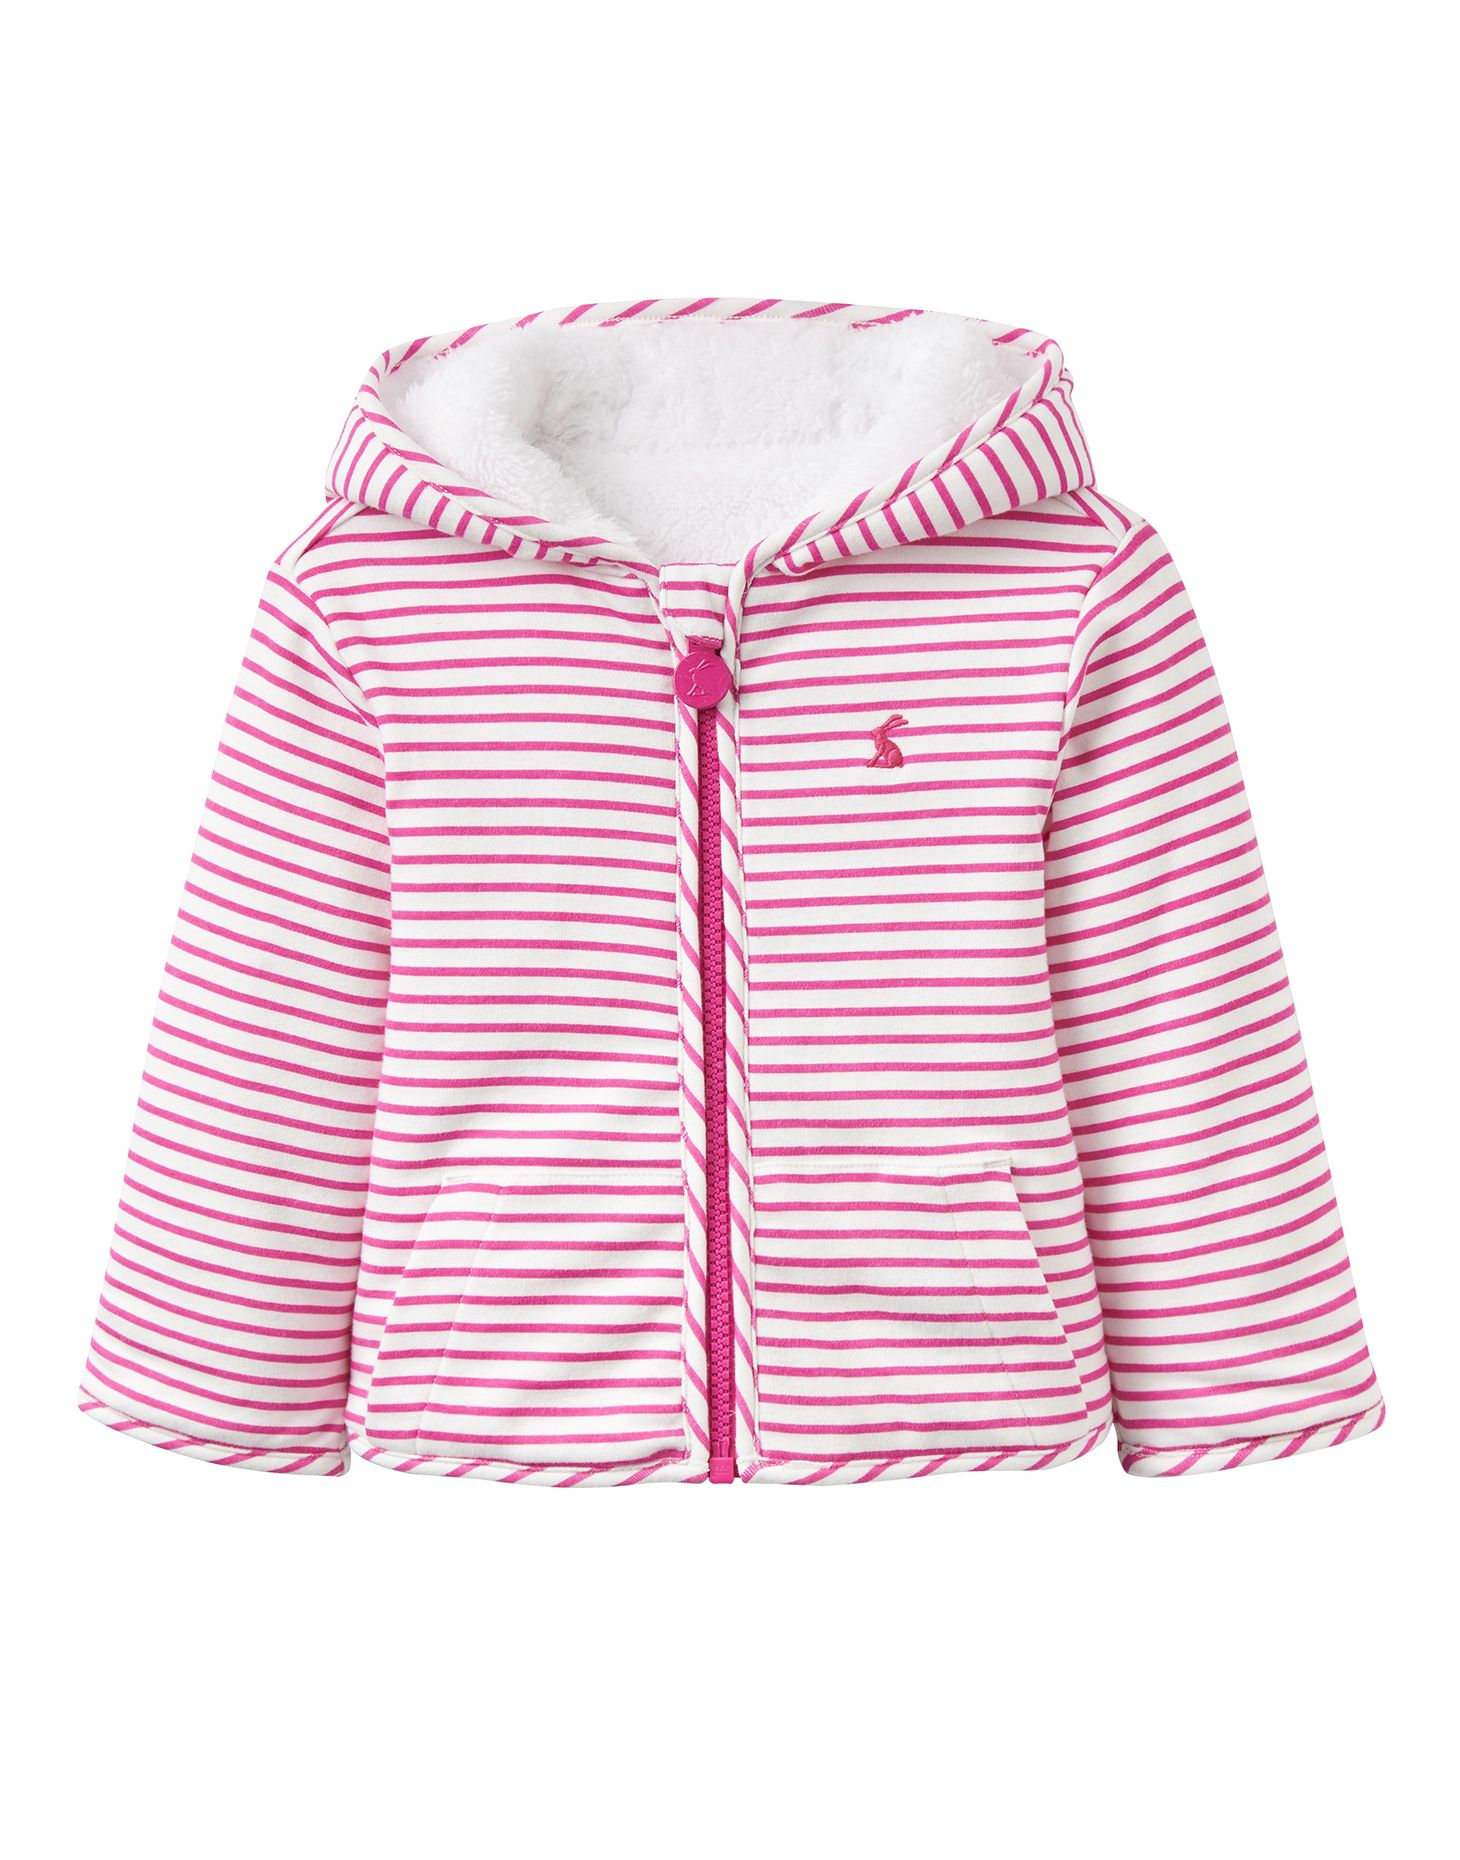 Joules Baby Girls Cosette Pink Orange Striped Zip Reversible Sweatshirt Jacket